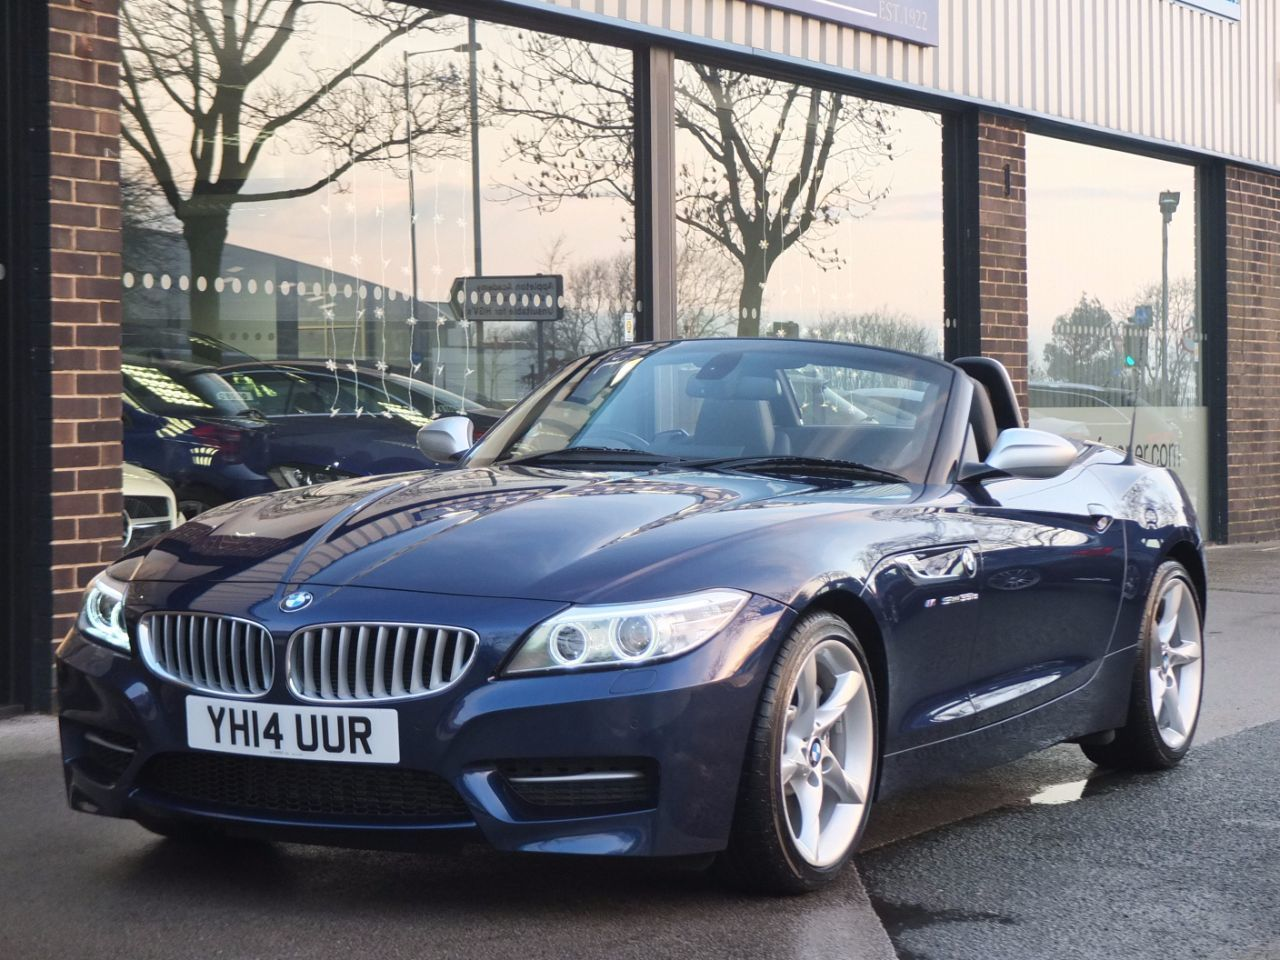 BMW Z4 3.0 35is sDrive DCT 340ps Convertible Petrol Deep Sea Blue MetallicBMW Z4 3.0 35is sDrive DCT 340ps Convertible Petrol Deep Sea Blue Metallic at fa Roper Ltd Bradford